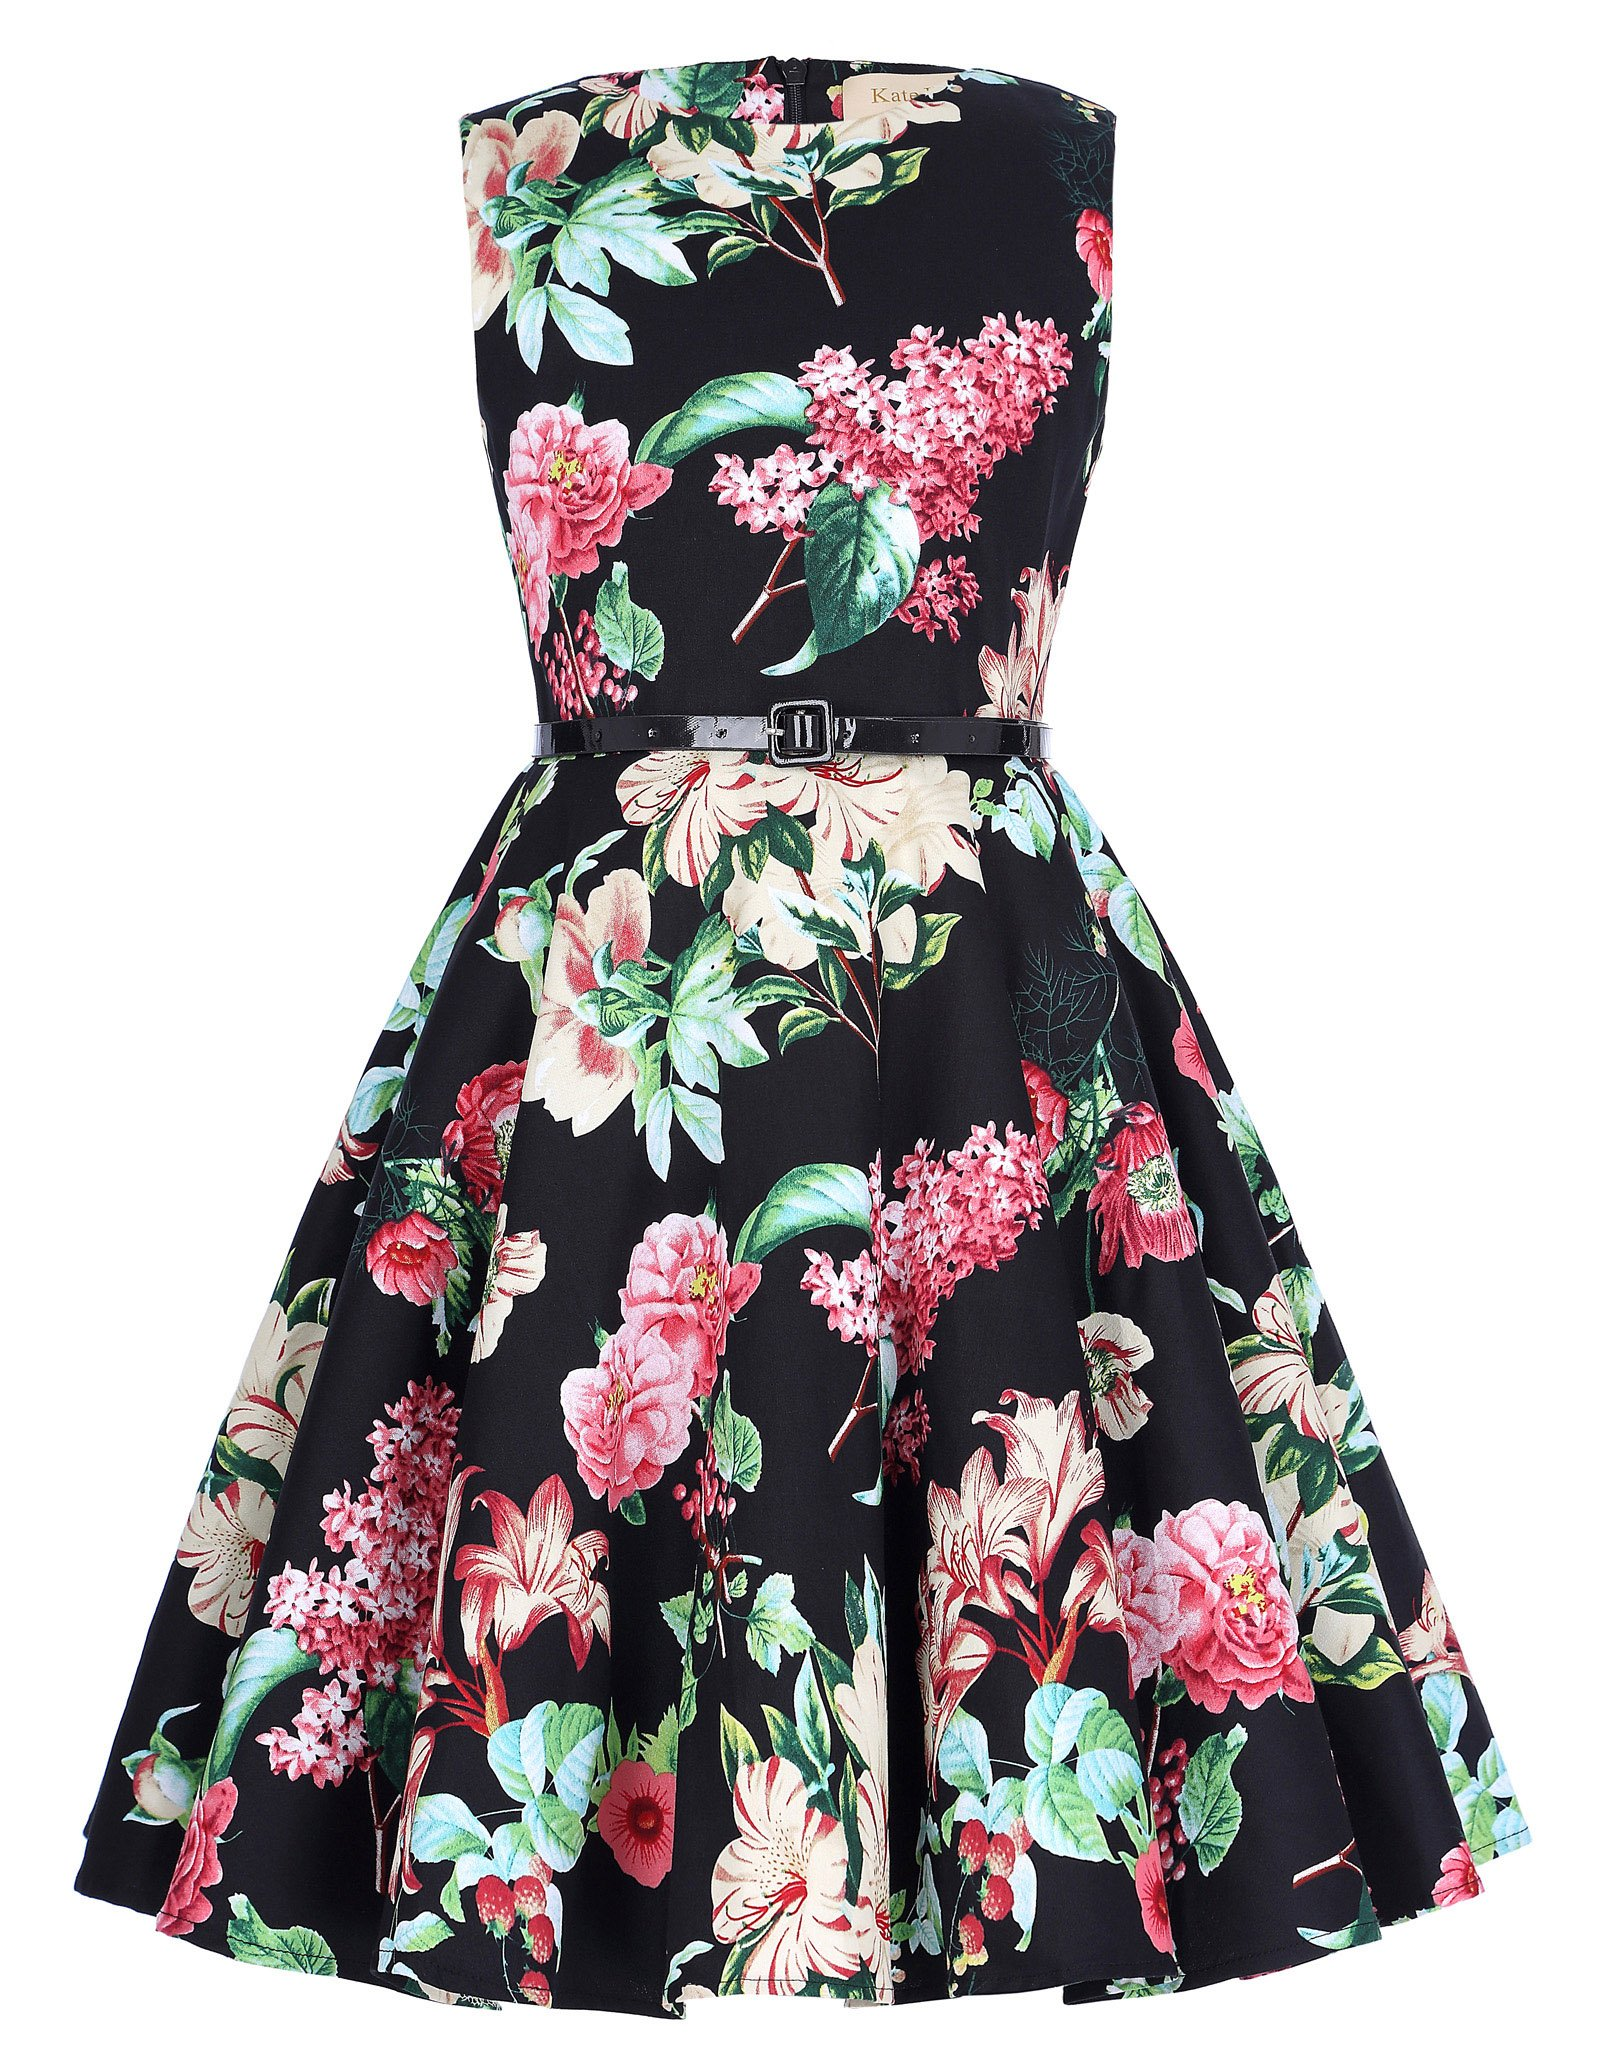 50c809040a9 Kate Kasin Girls Sleeveless Vintage Print Swing Party Dresses 6-15 Years  product image